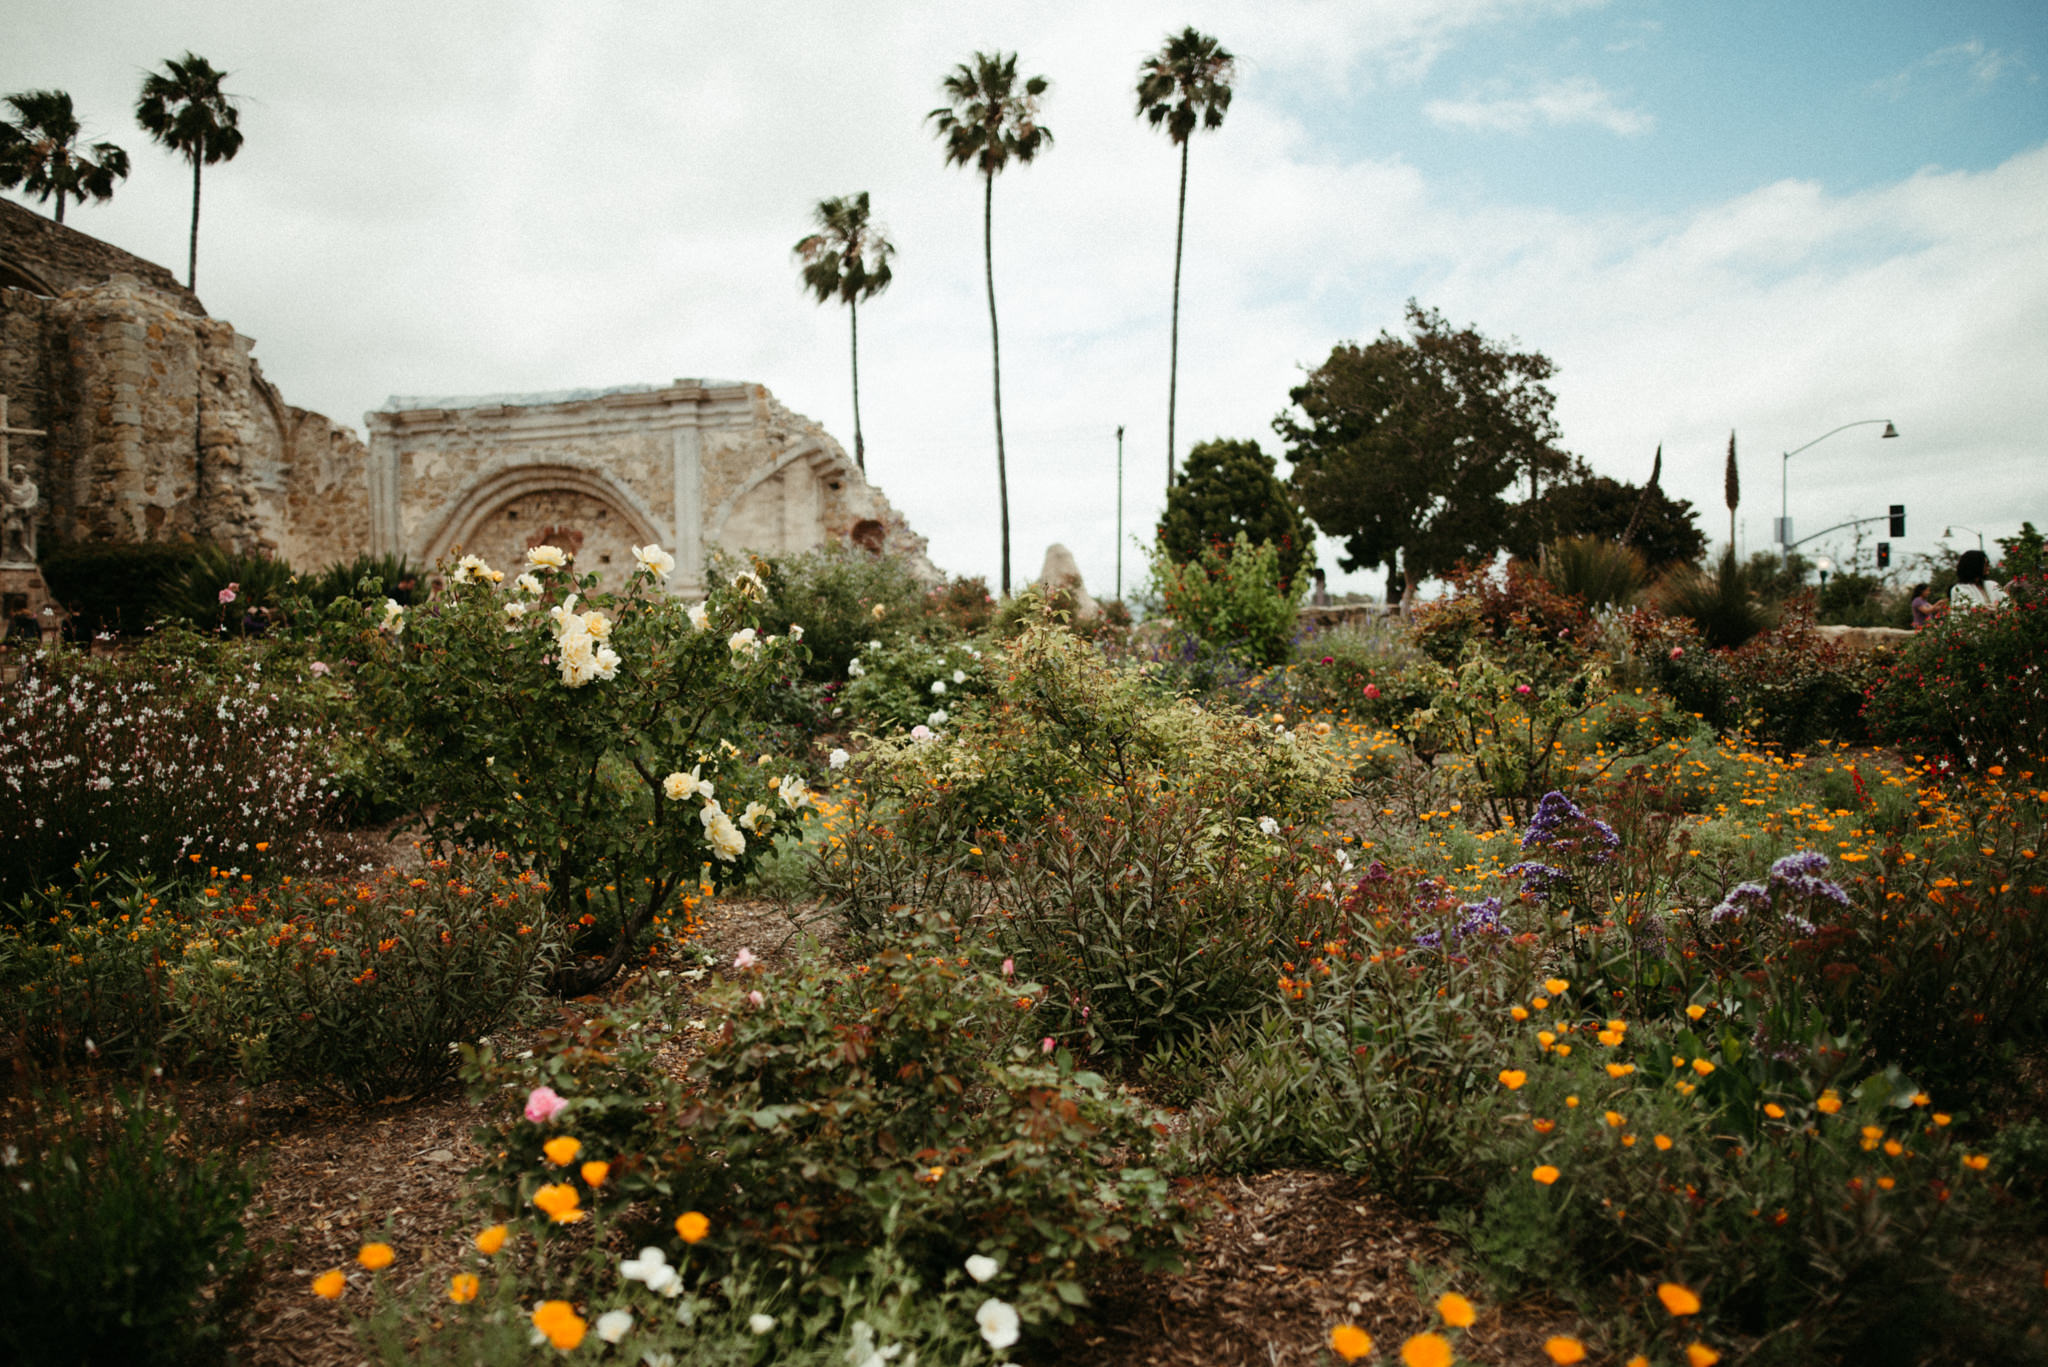 Zach and Rosalie - Franciscan Garden Wedding - San Juan Capistrano - The Mission - Southern California Wedding Photographer-2742.jpg